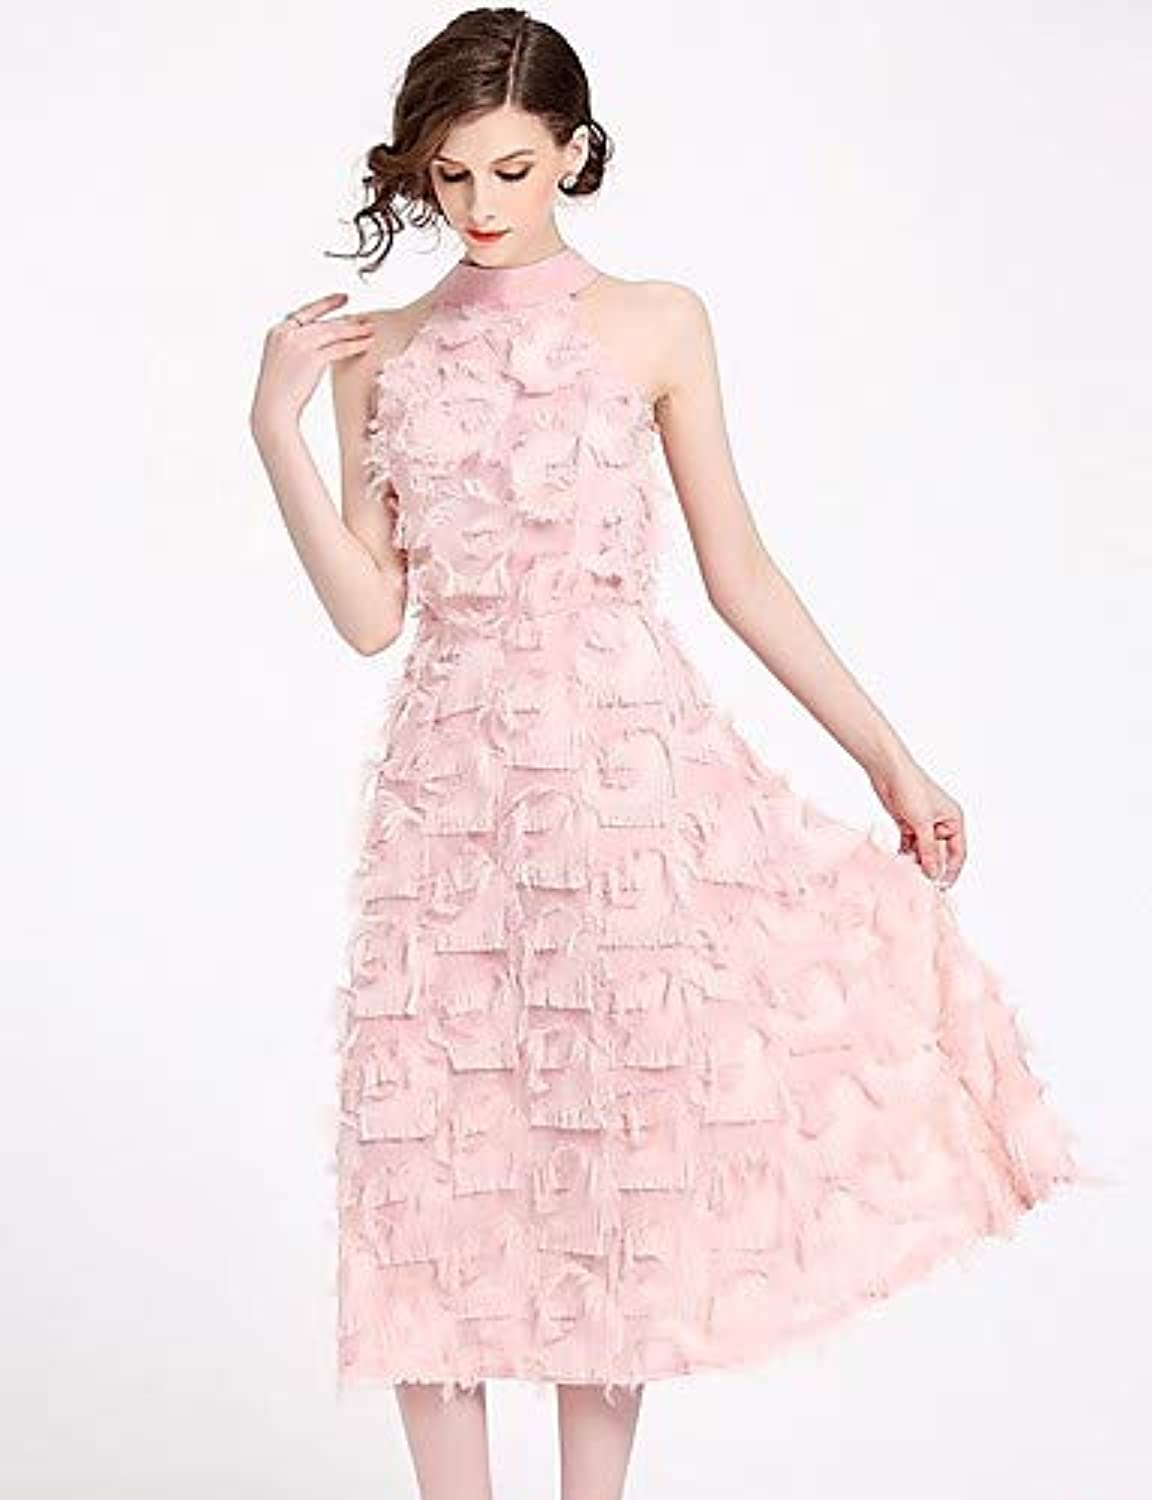 Women's Beach Slim A Line Dress  Solid colord Floral   Geometric Lace Pleated   Tassel Stand